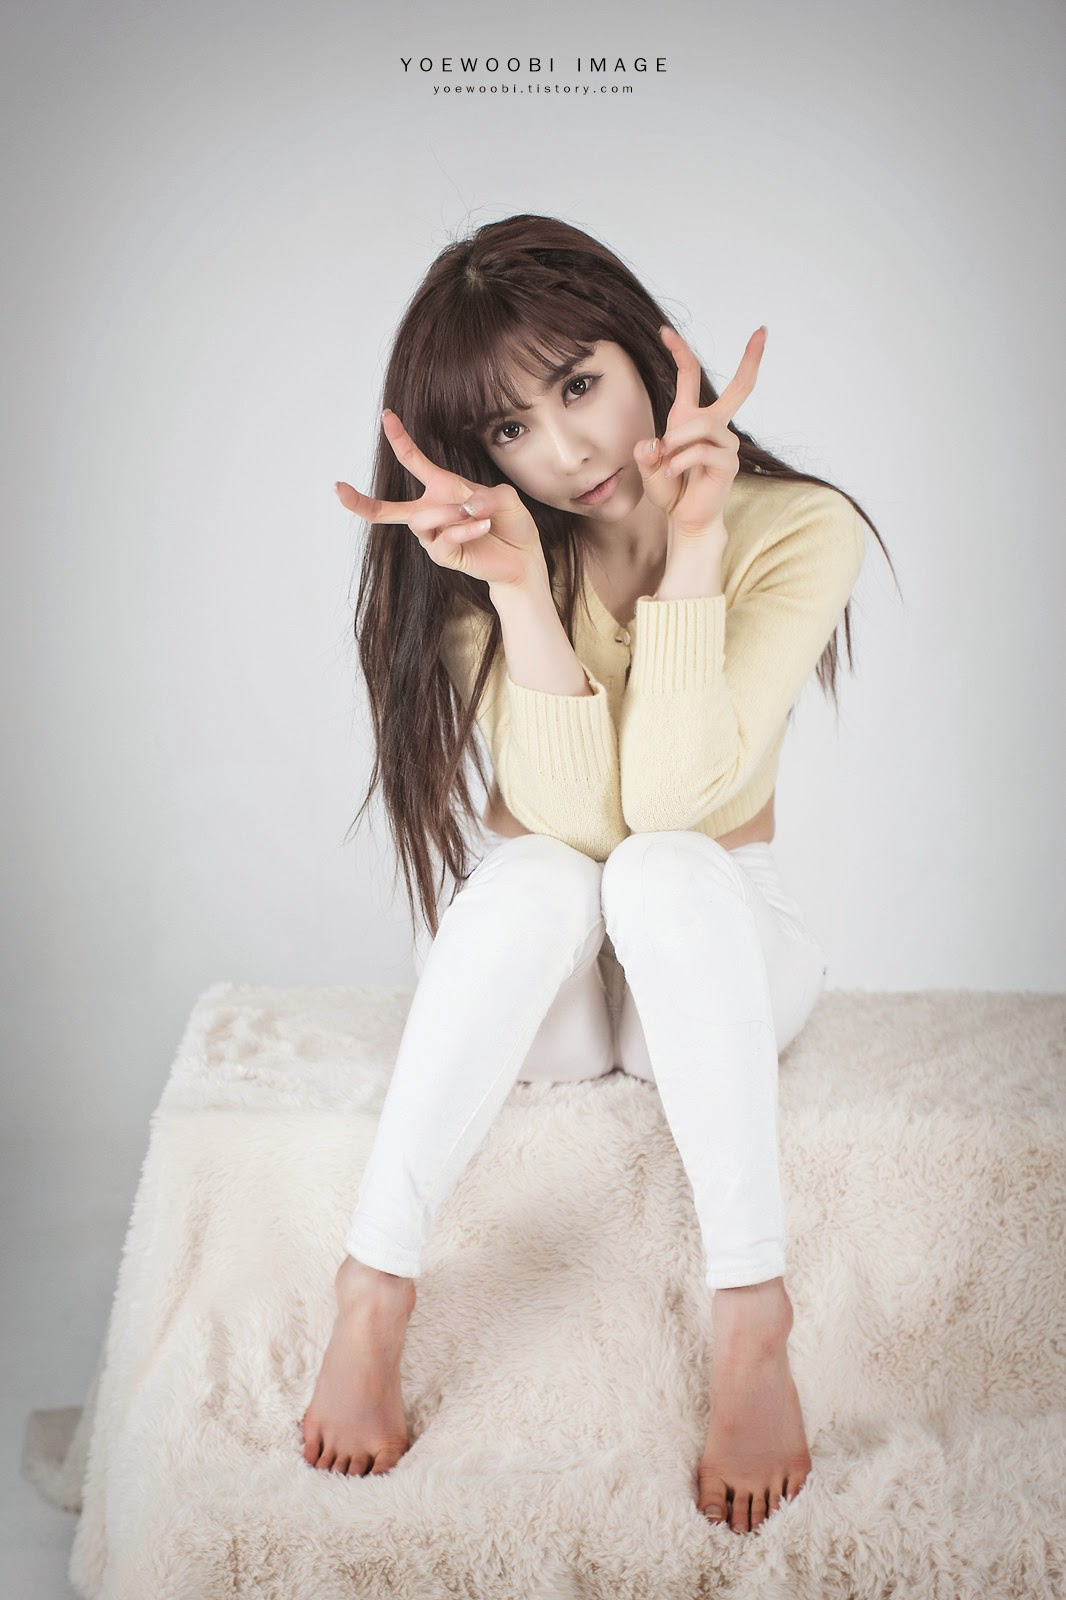 3 Jo Se Hee - Yellow Sweater - very cute asian girl-girlcute4u.blogspot.com